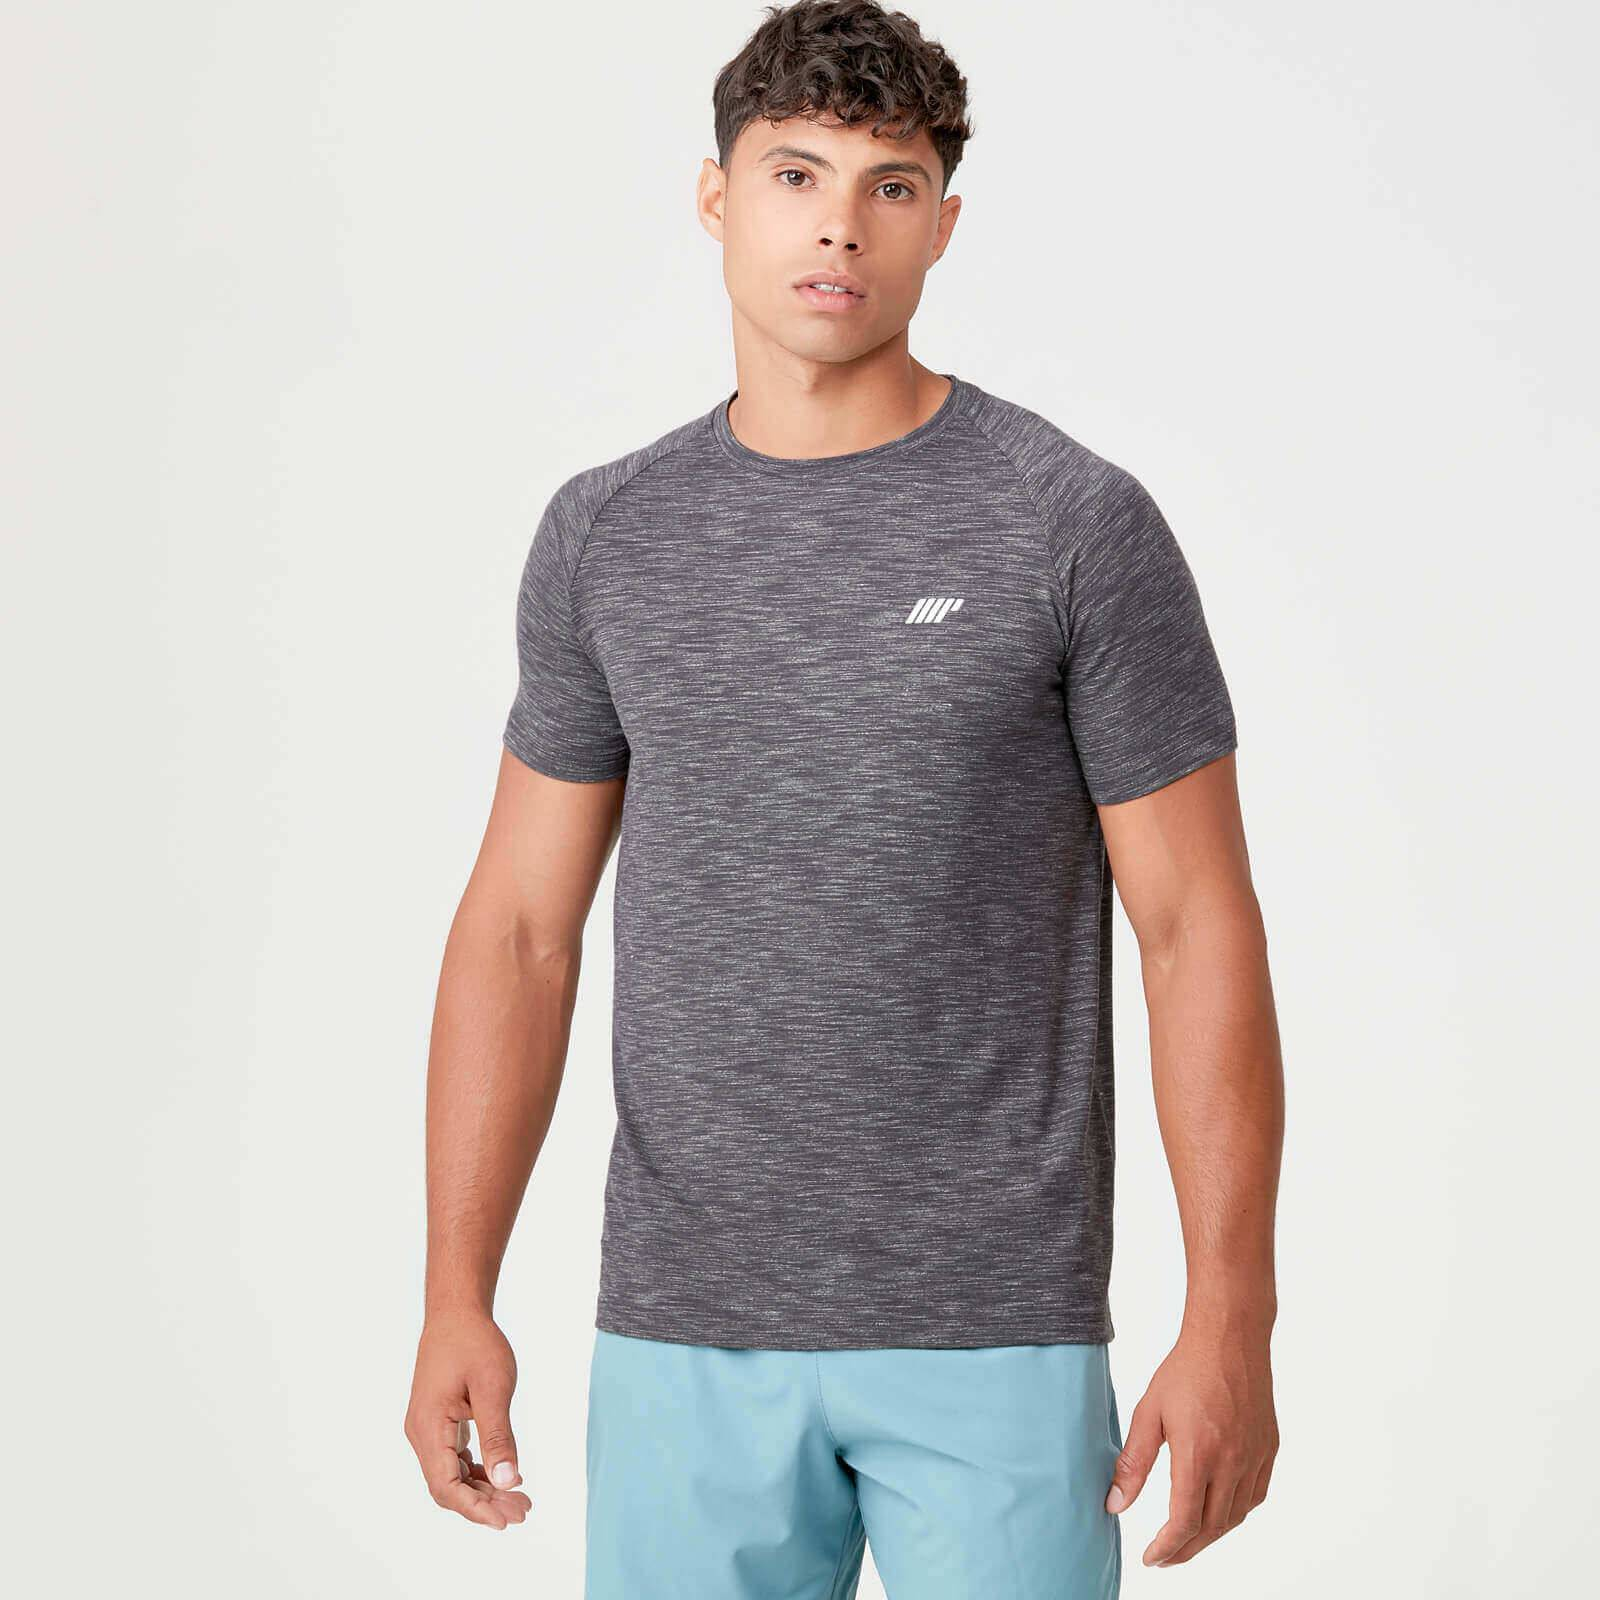 Myprotein Performance T-Shirt - Charcoal Marl - XS